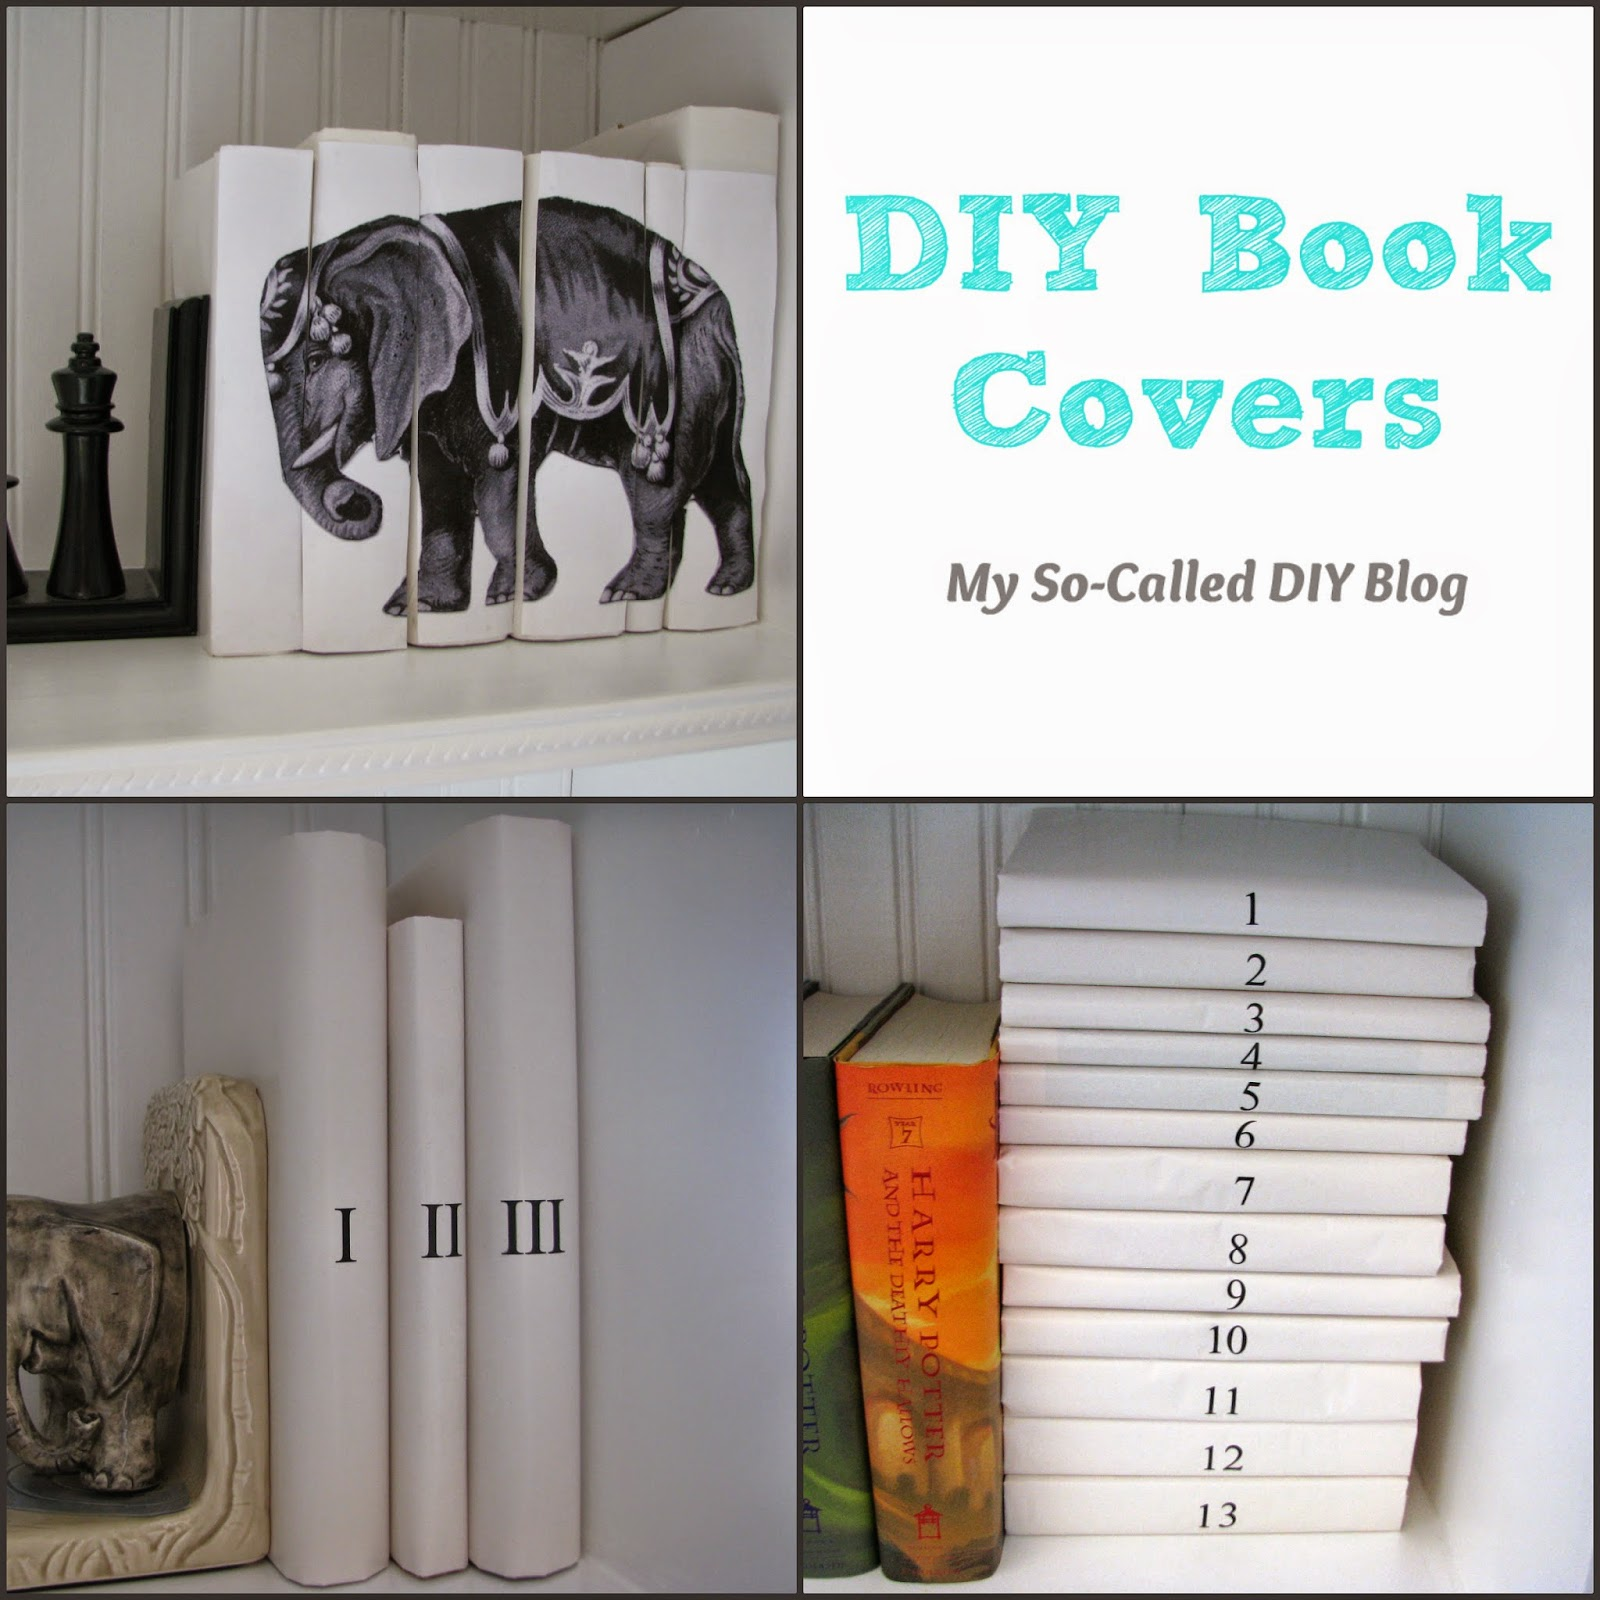 http://www.mysocalleddiyblog.com/2015/03/diy-book-covers.html